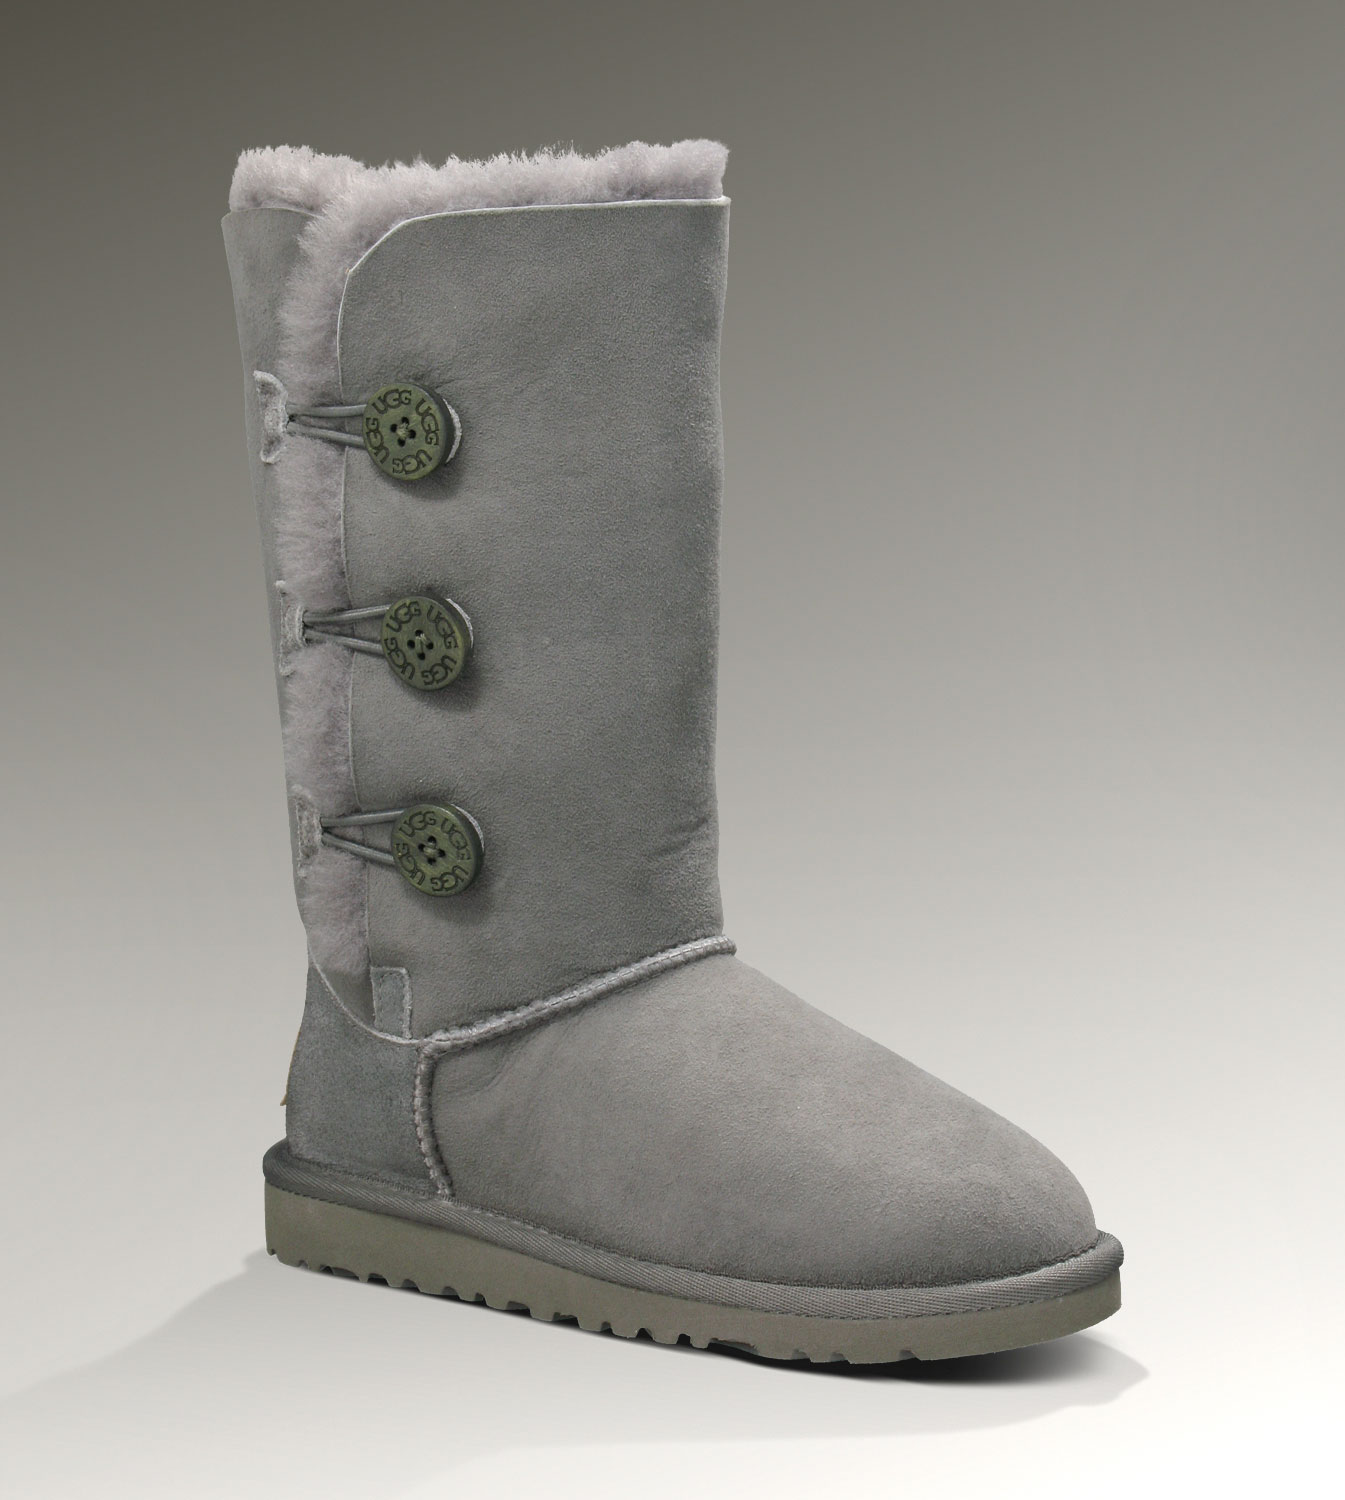 UGG Bailey Button Triplet 1962 Grey Boots